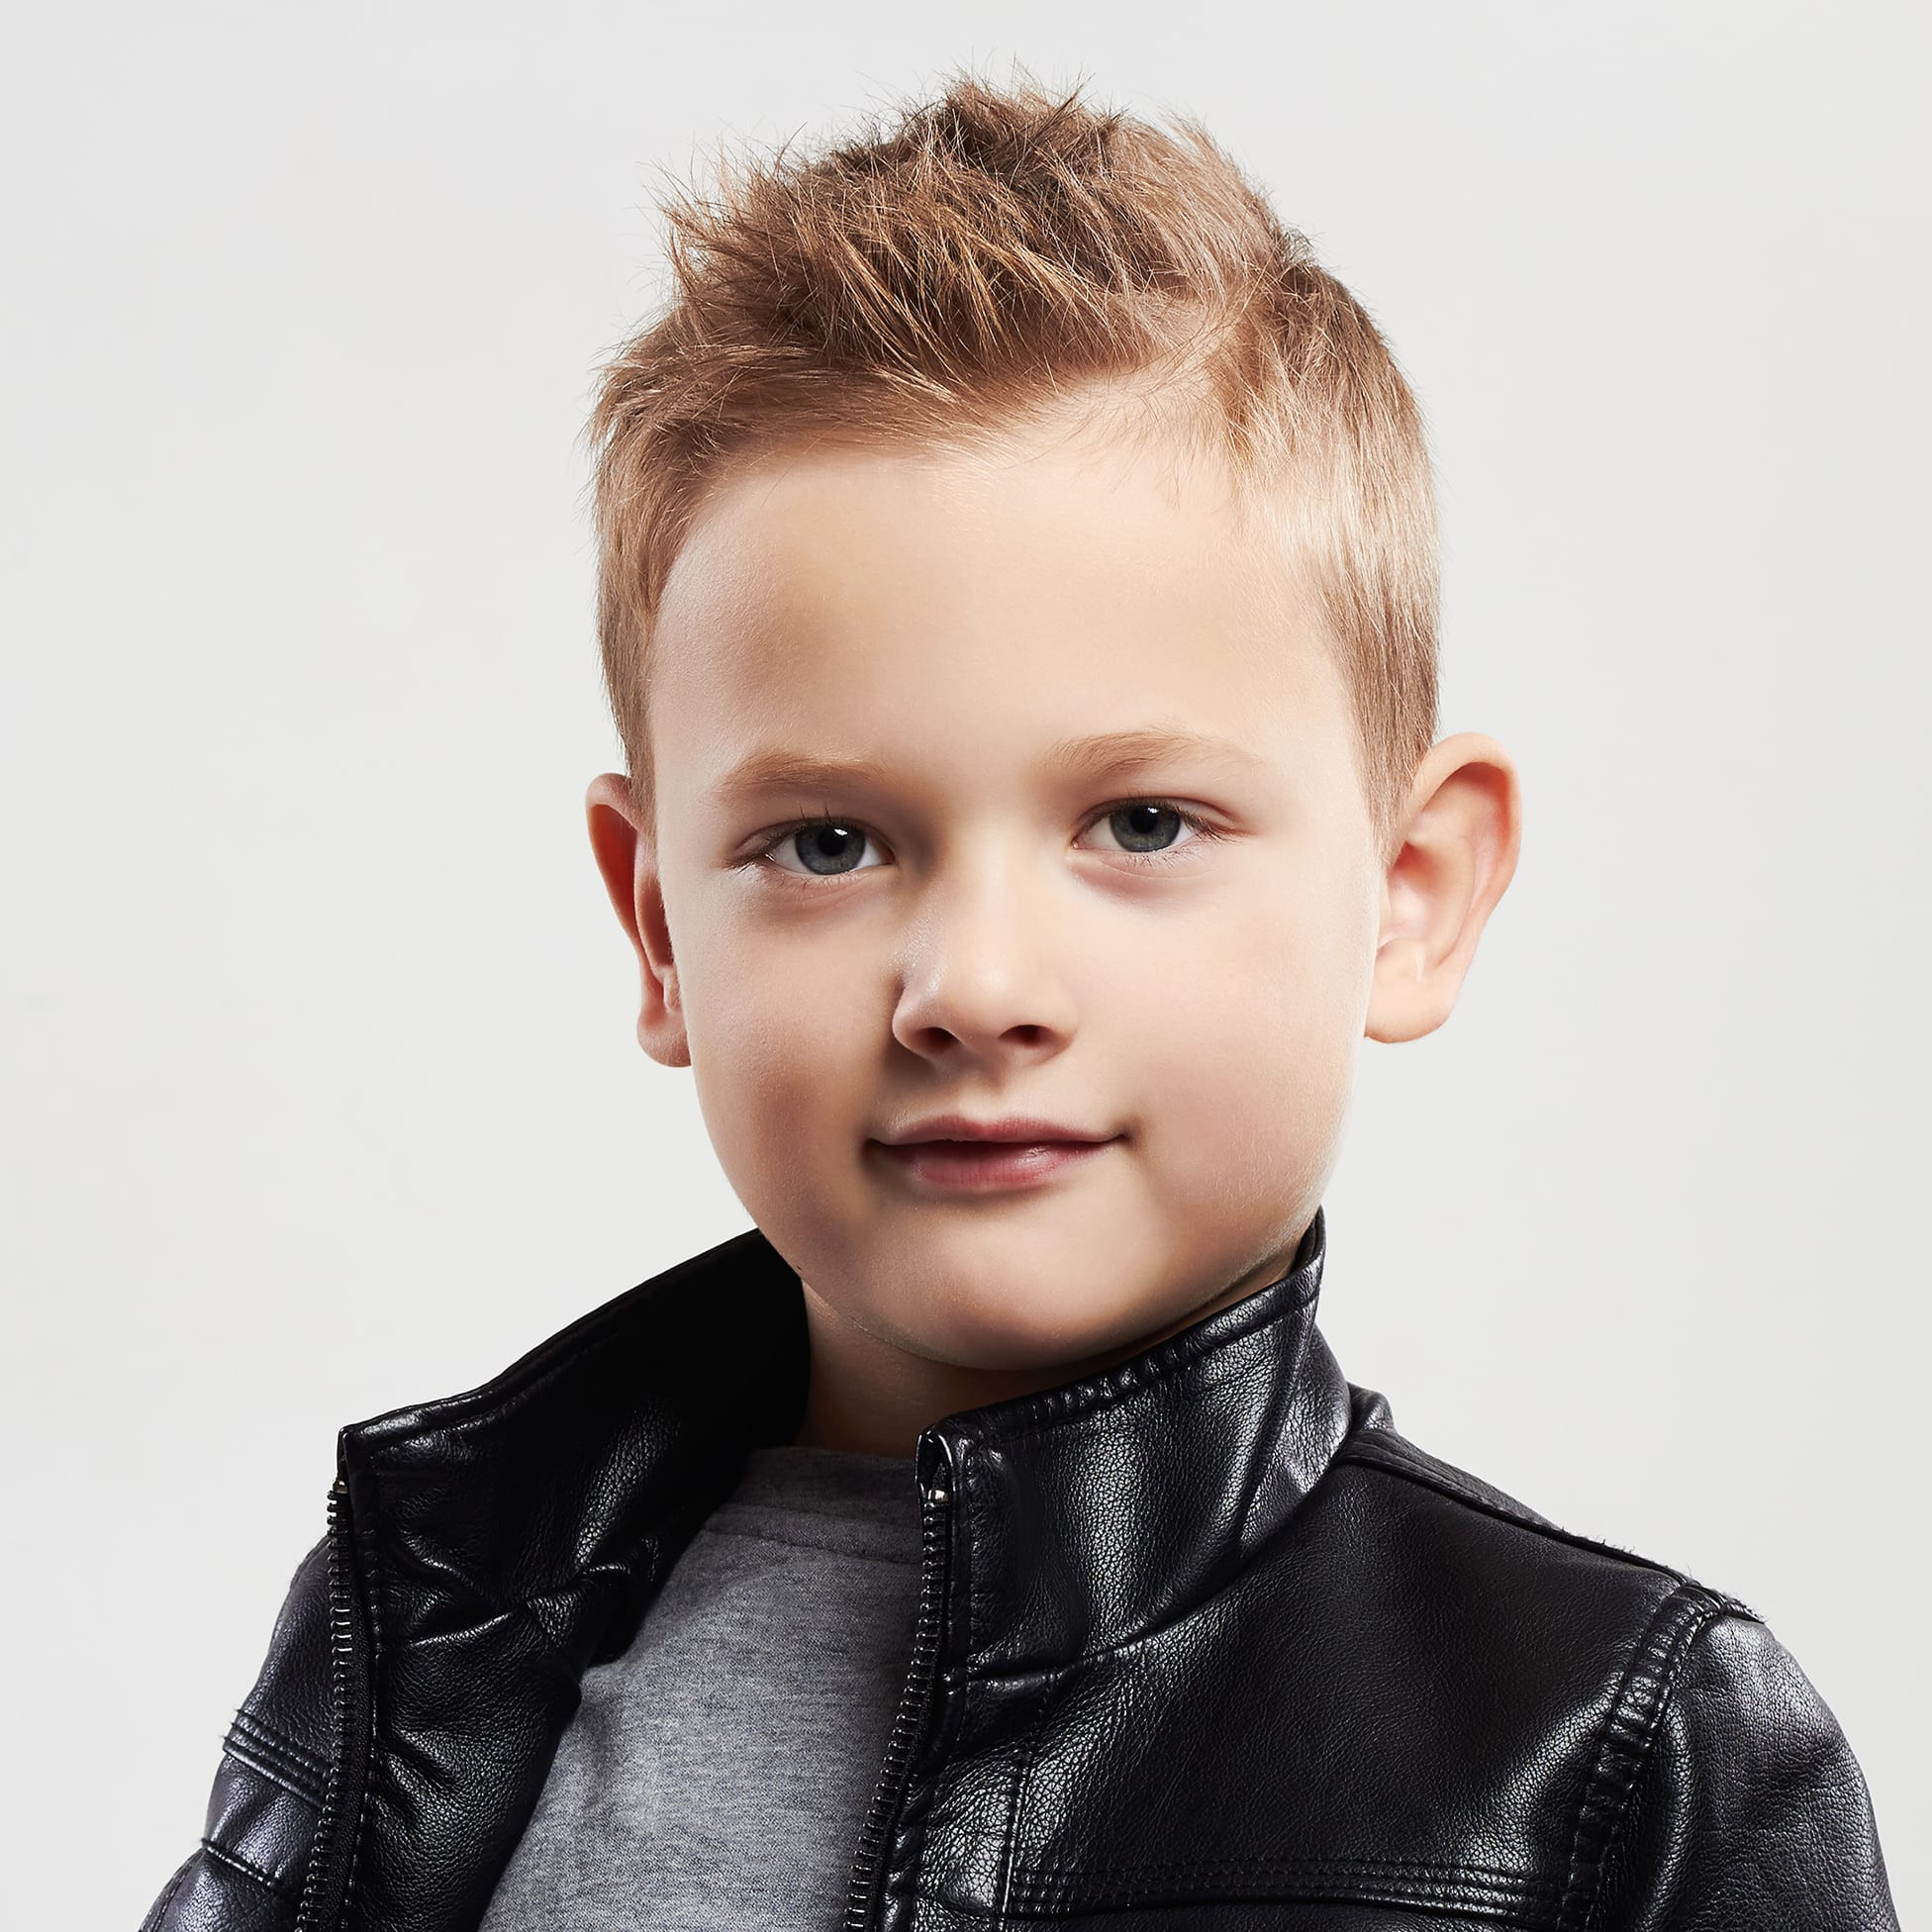 Best ideas about Little Boys Hairstyles 2019 . Save or Pin 35 Cute Toddler Boy Haircuts Your Kids will Love Now.